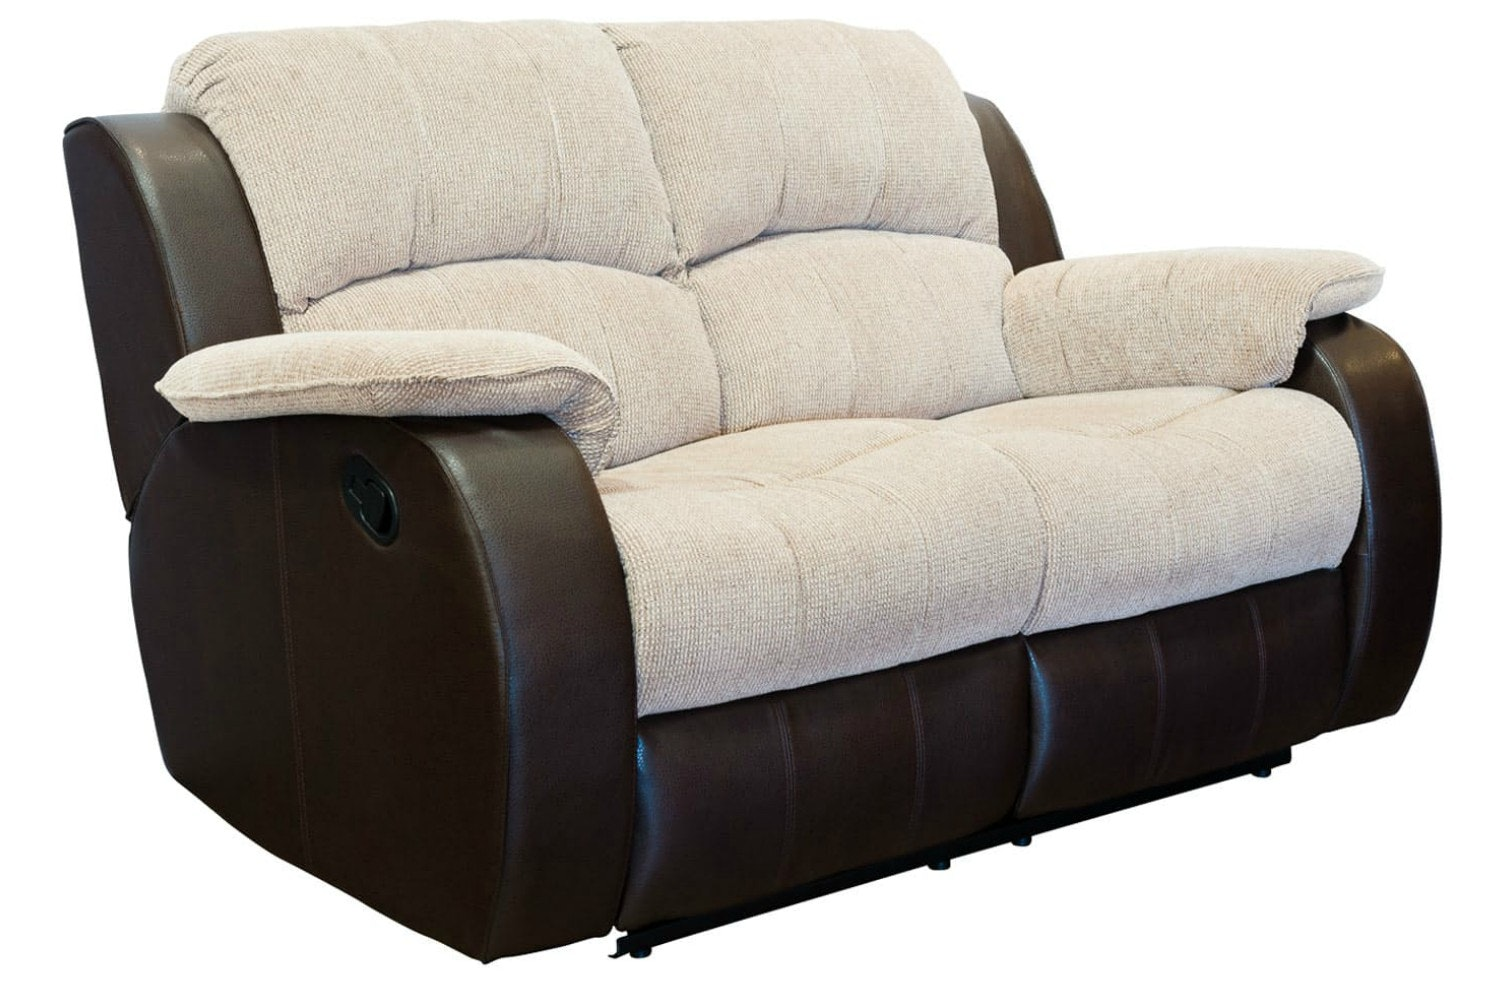 2 Seater Recliner Sofas Refil Sofa : kayde from forexrefiller.com size 1500 x 1000 jpeg 114kB